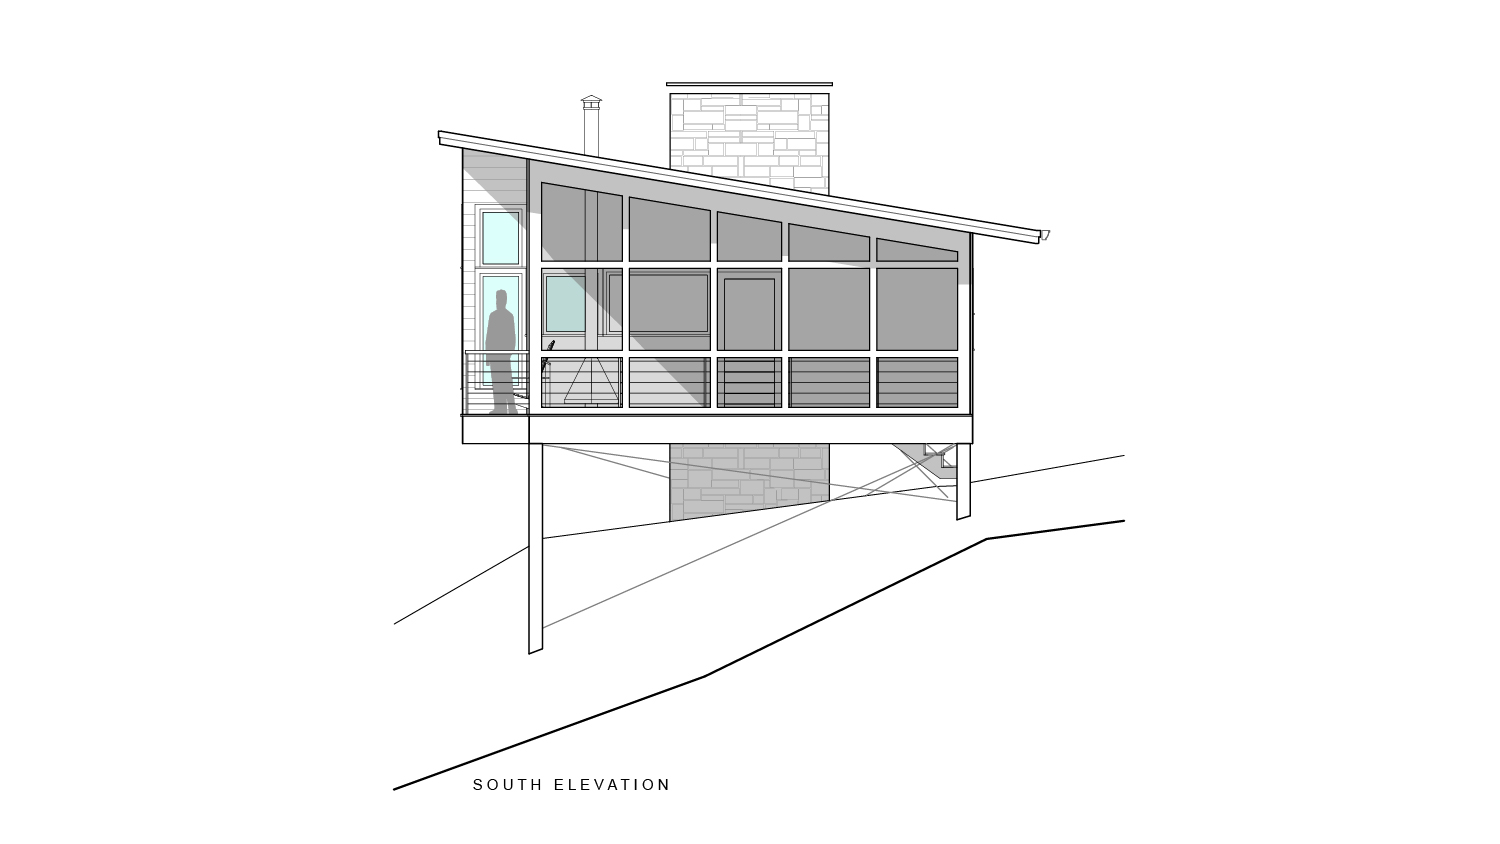 dickerman-south-elevation